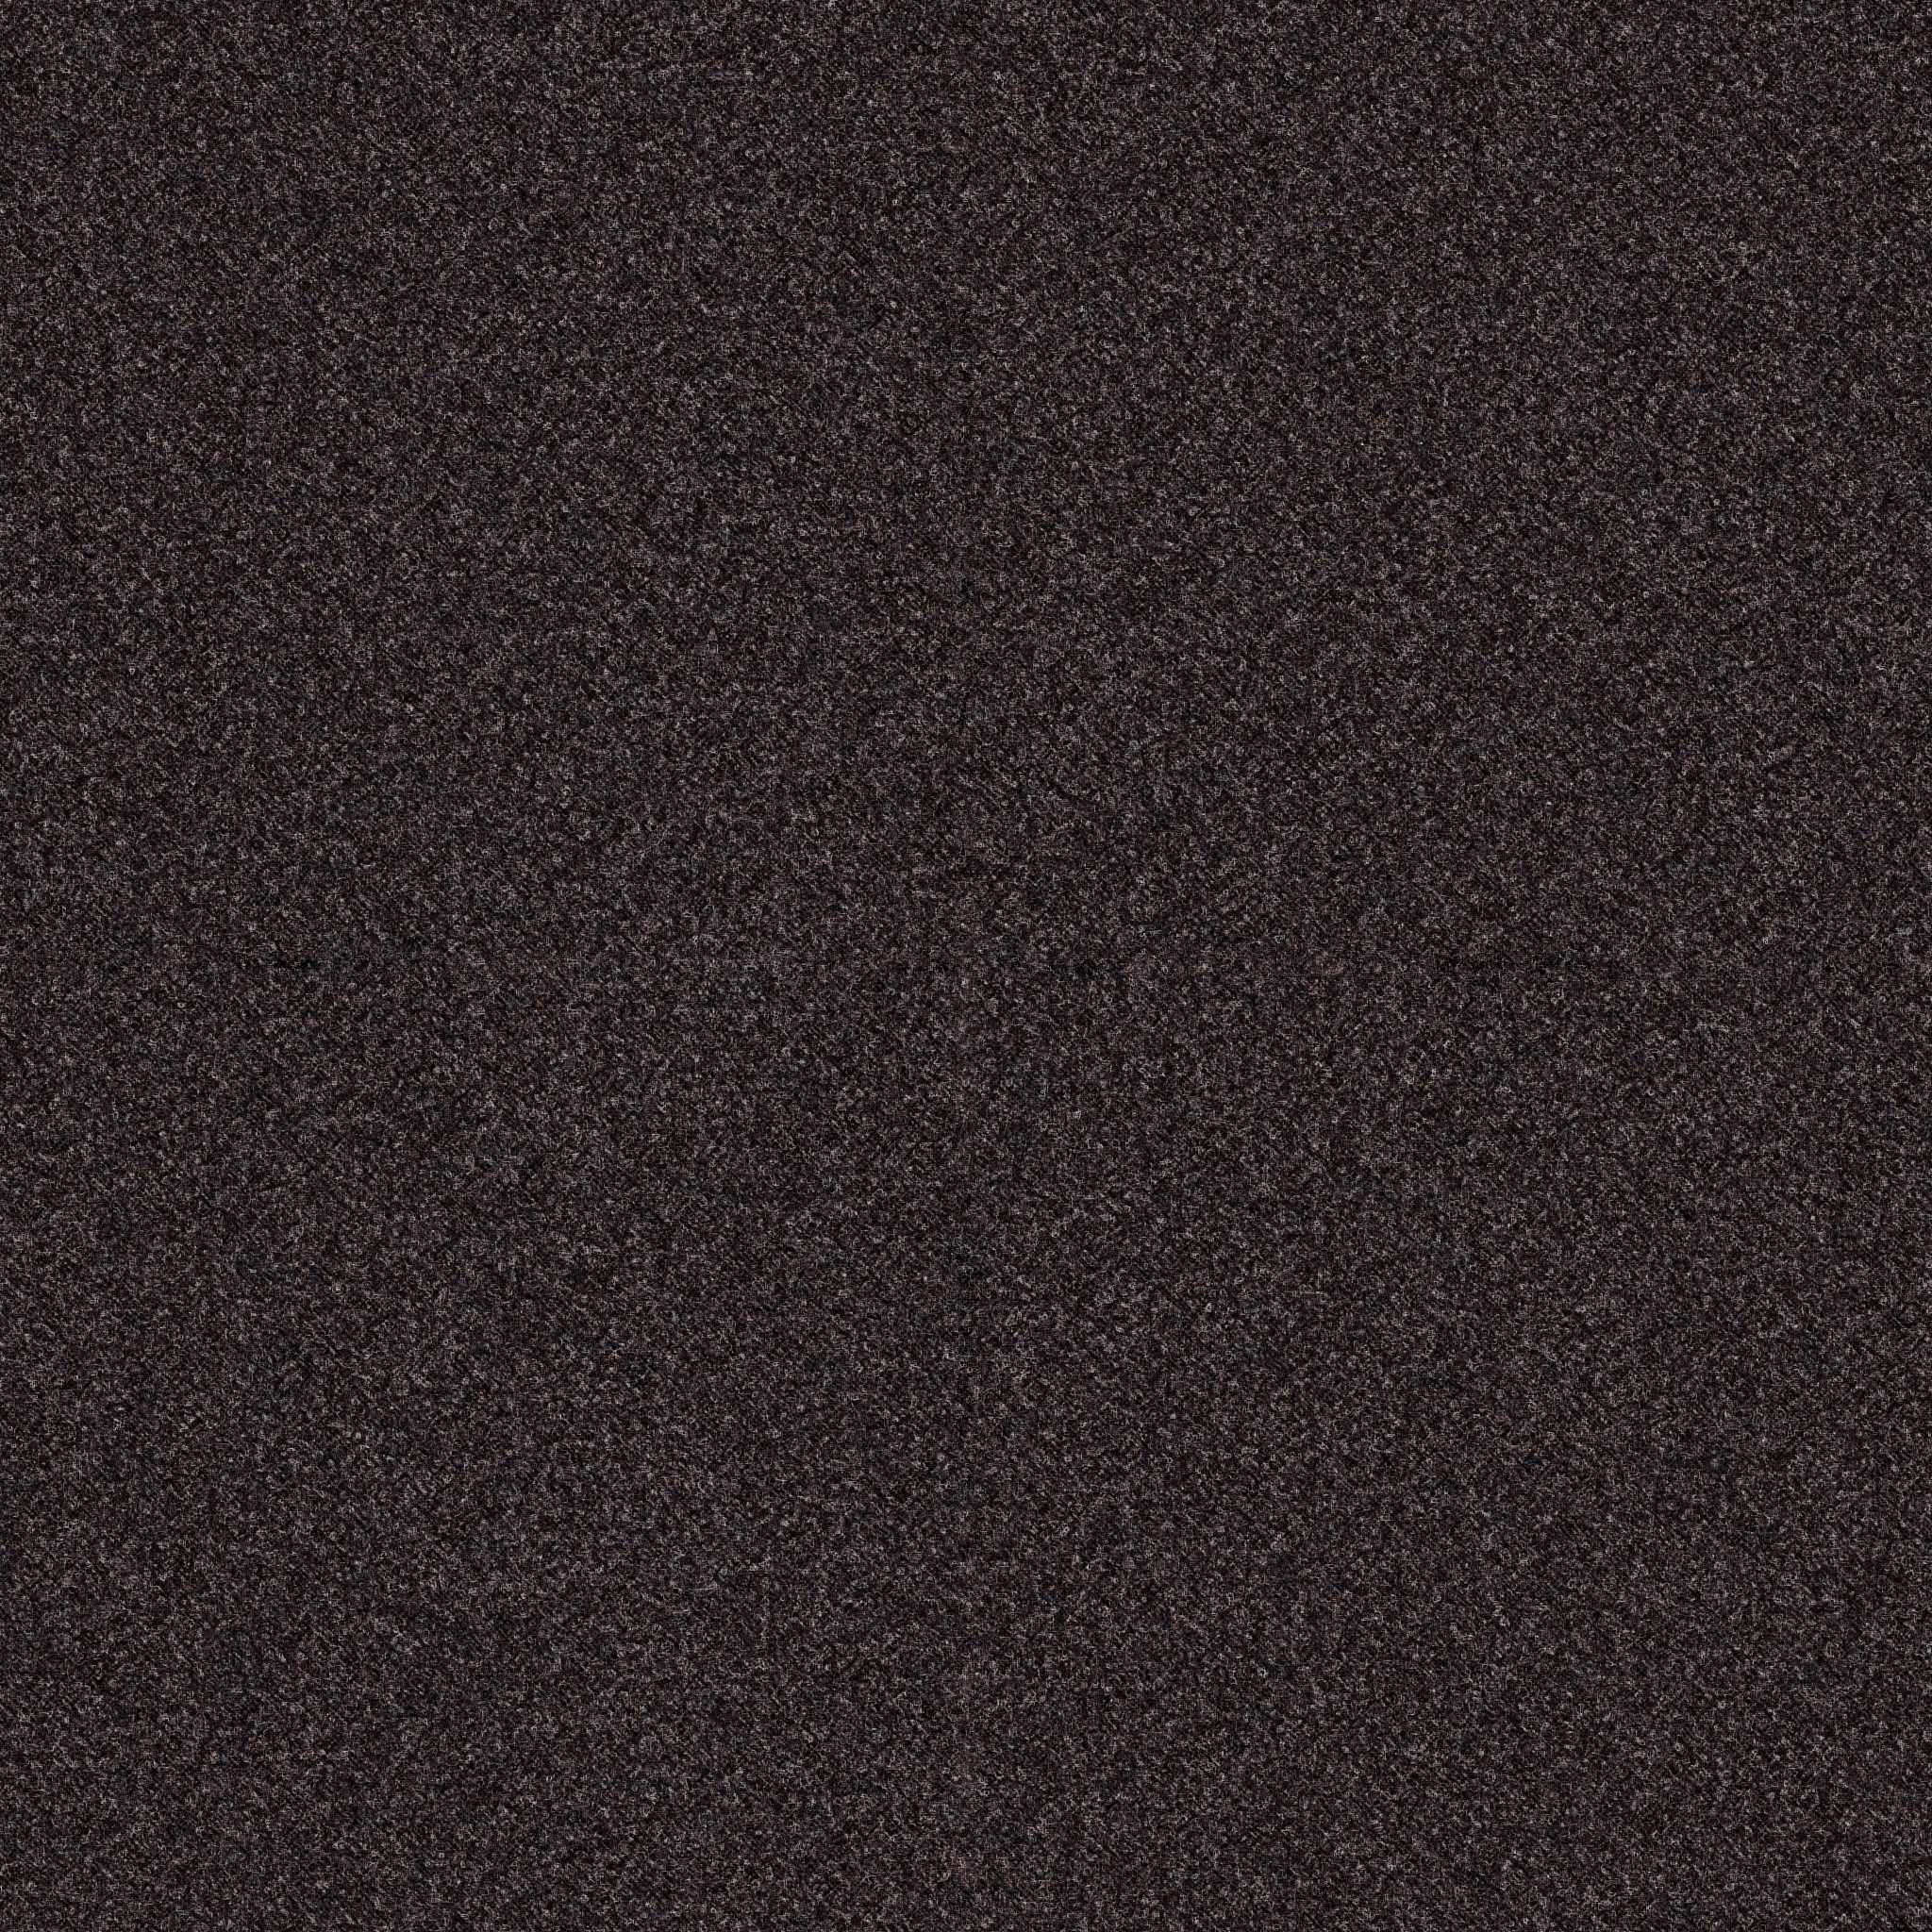 dark grey carpet texture. Perfect Grey Black Carpet Texture Seamless Fine Dark Tileable 2048x2048  By FabooGuy To Grey T